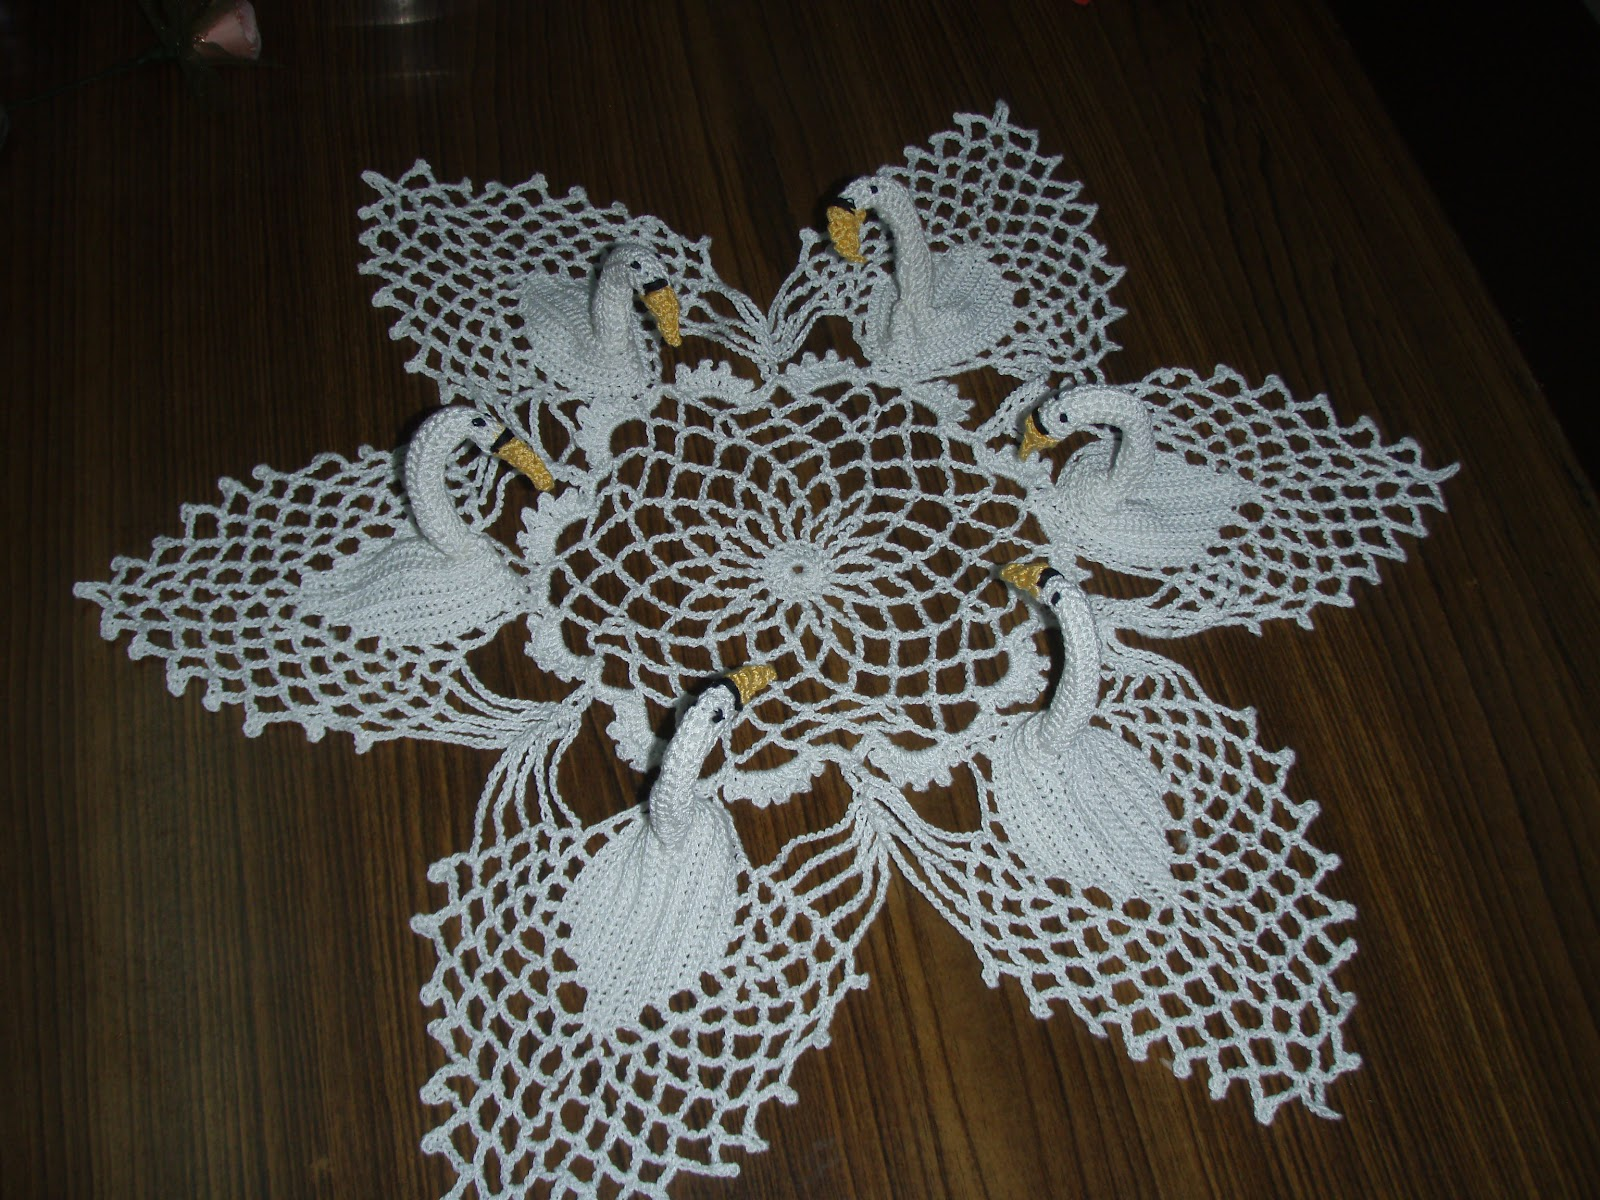 Free Download Of Crochet Patterns : Free Crochet Swan Pattern ~ Free Crochet Patterns